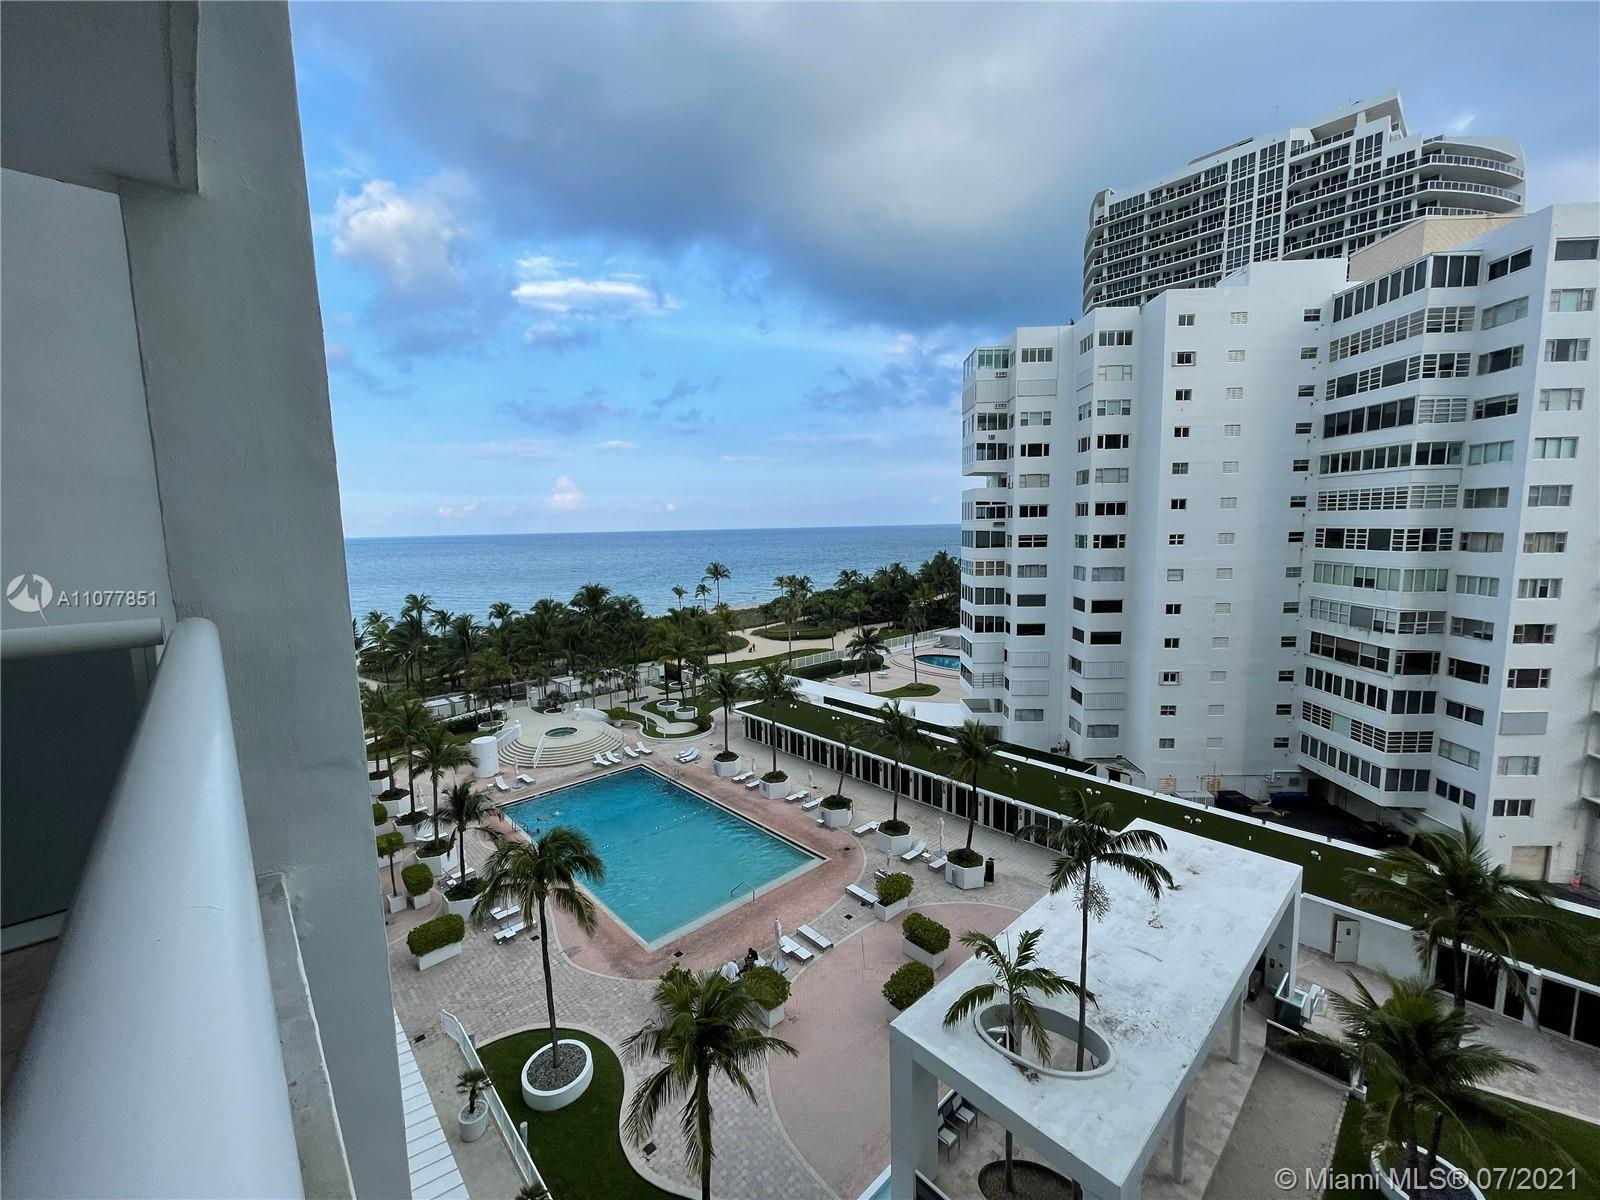 Beautiful unit in the heart of bal harbour, beachfront property with a wide variety of amenities, be